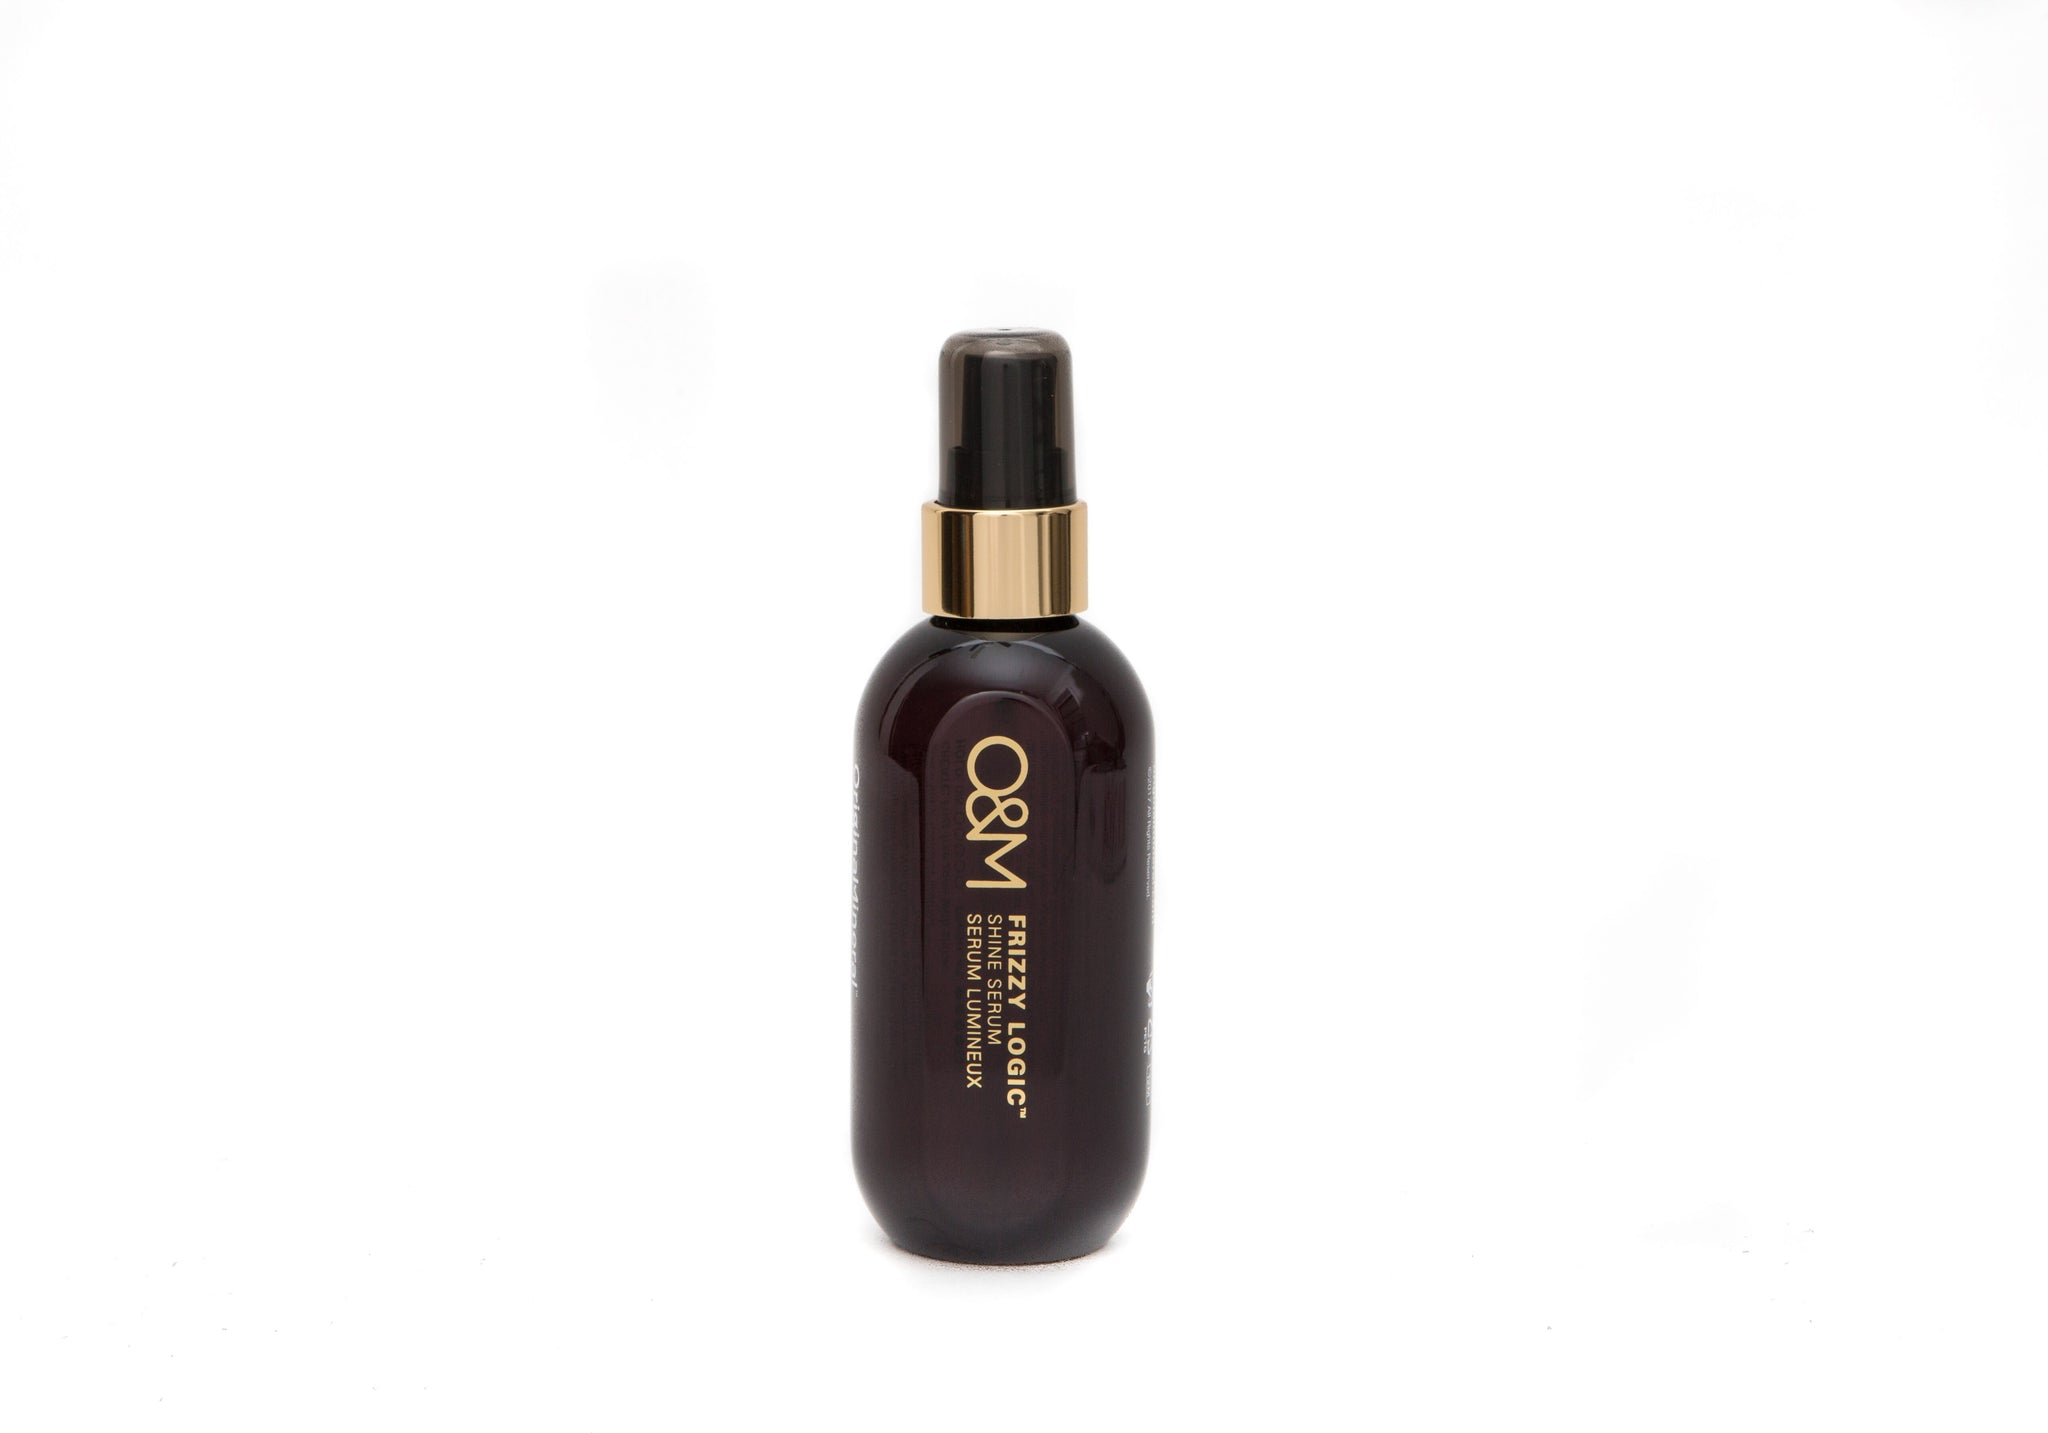 O&M Frizzy Logic Shine Serum - 100ml